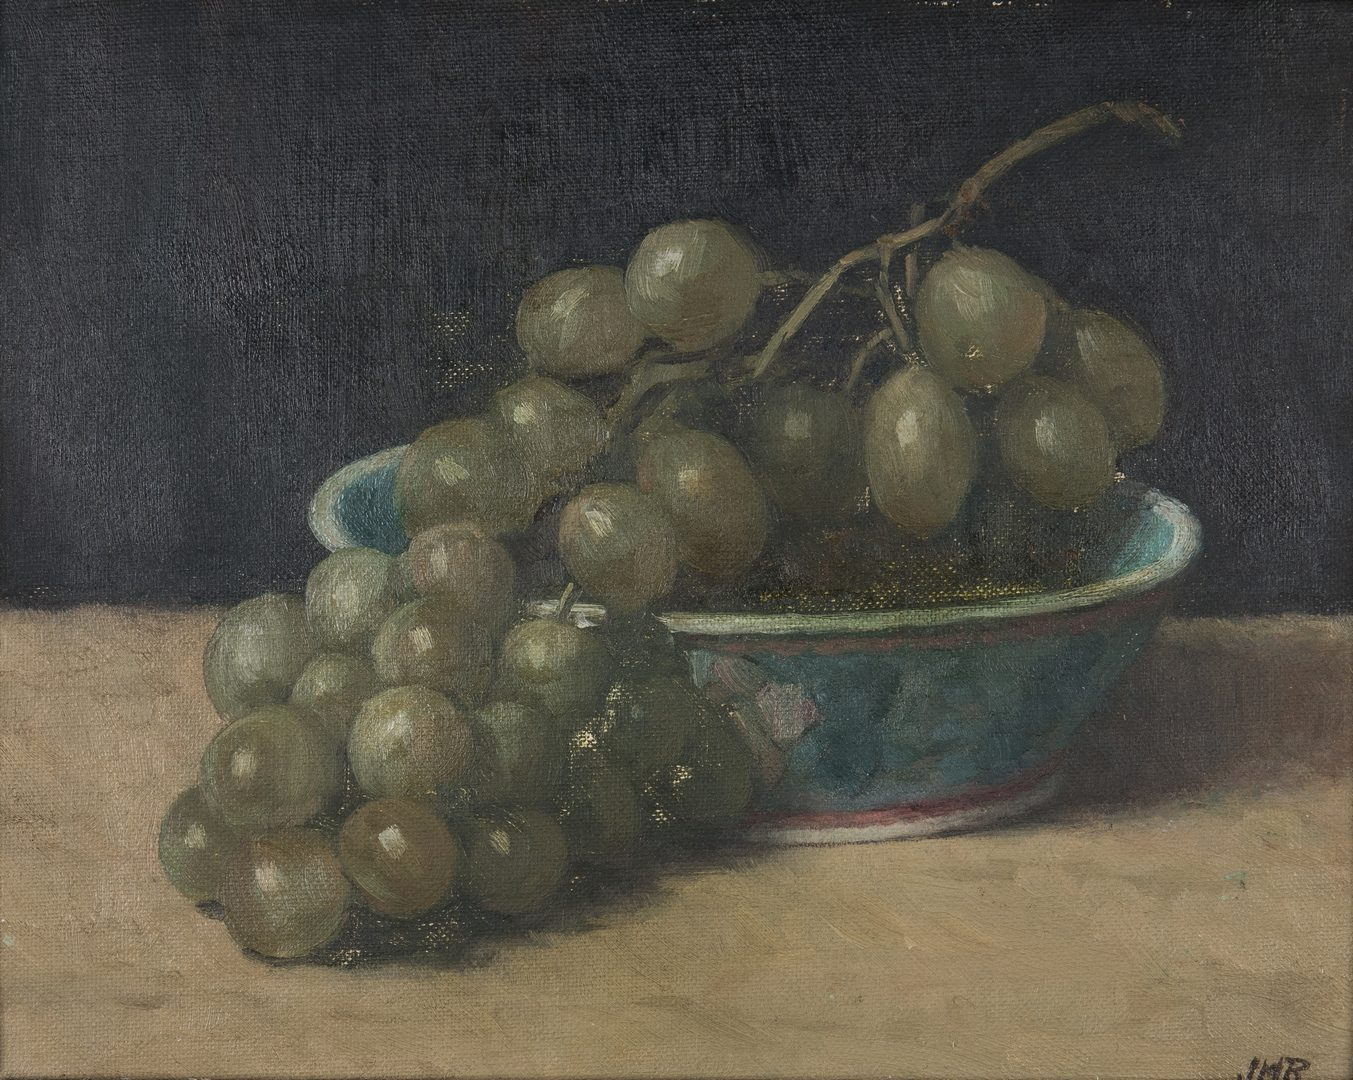 Lot 418: Landscape and Still Life by Cariani, Reeves